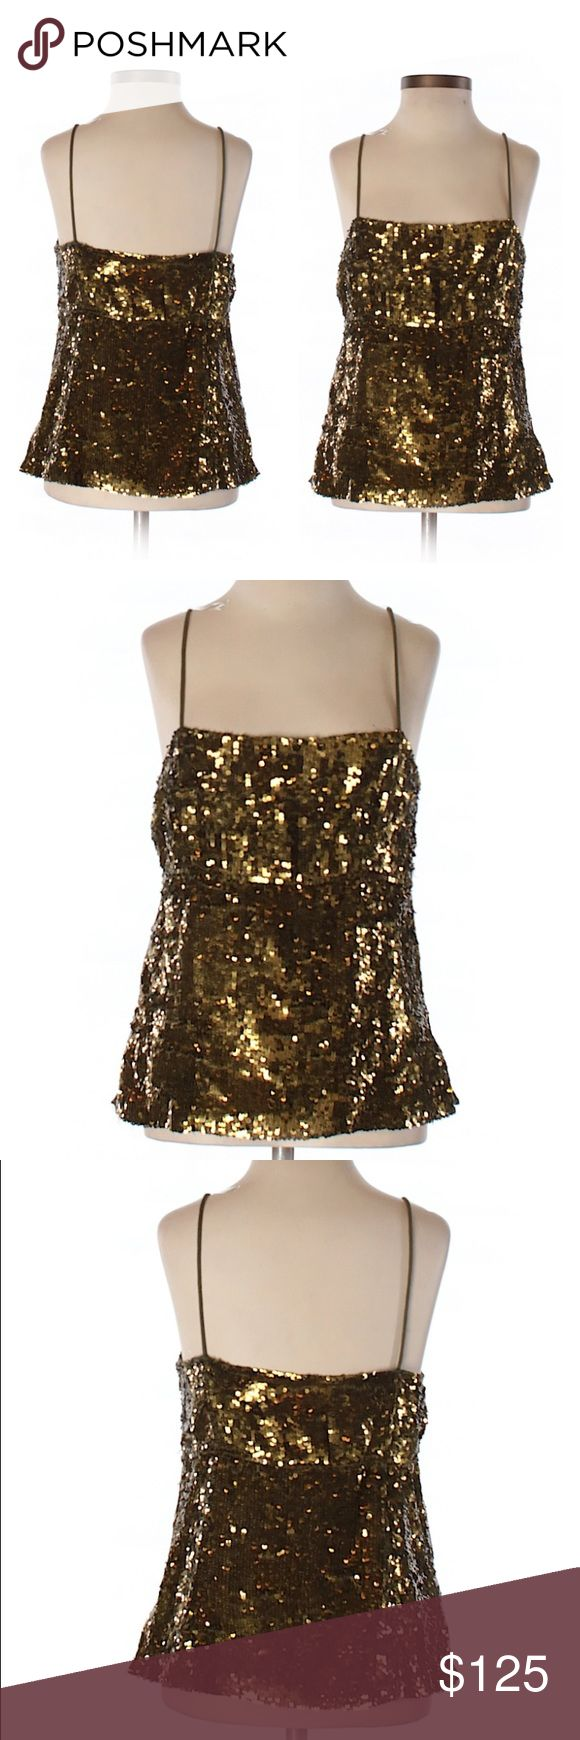 RARE! J. Crew Vintage Silk Sequin Gold Cami Tank RARE! J. Crew Vintage Silk Sequin Gold Cami Tank. Perfect condition! Grab this rare fine today. Please ask any and all questions prior to purchasing. If you need more pics, just ask! 😊 J. Crew Tops Camisoles